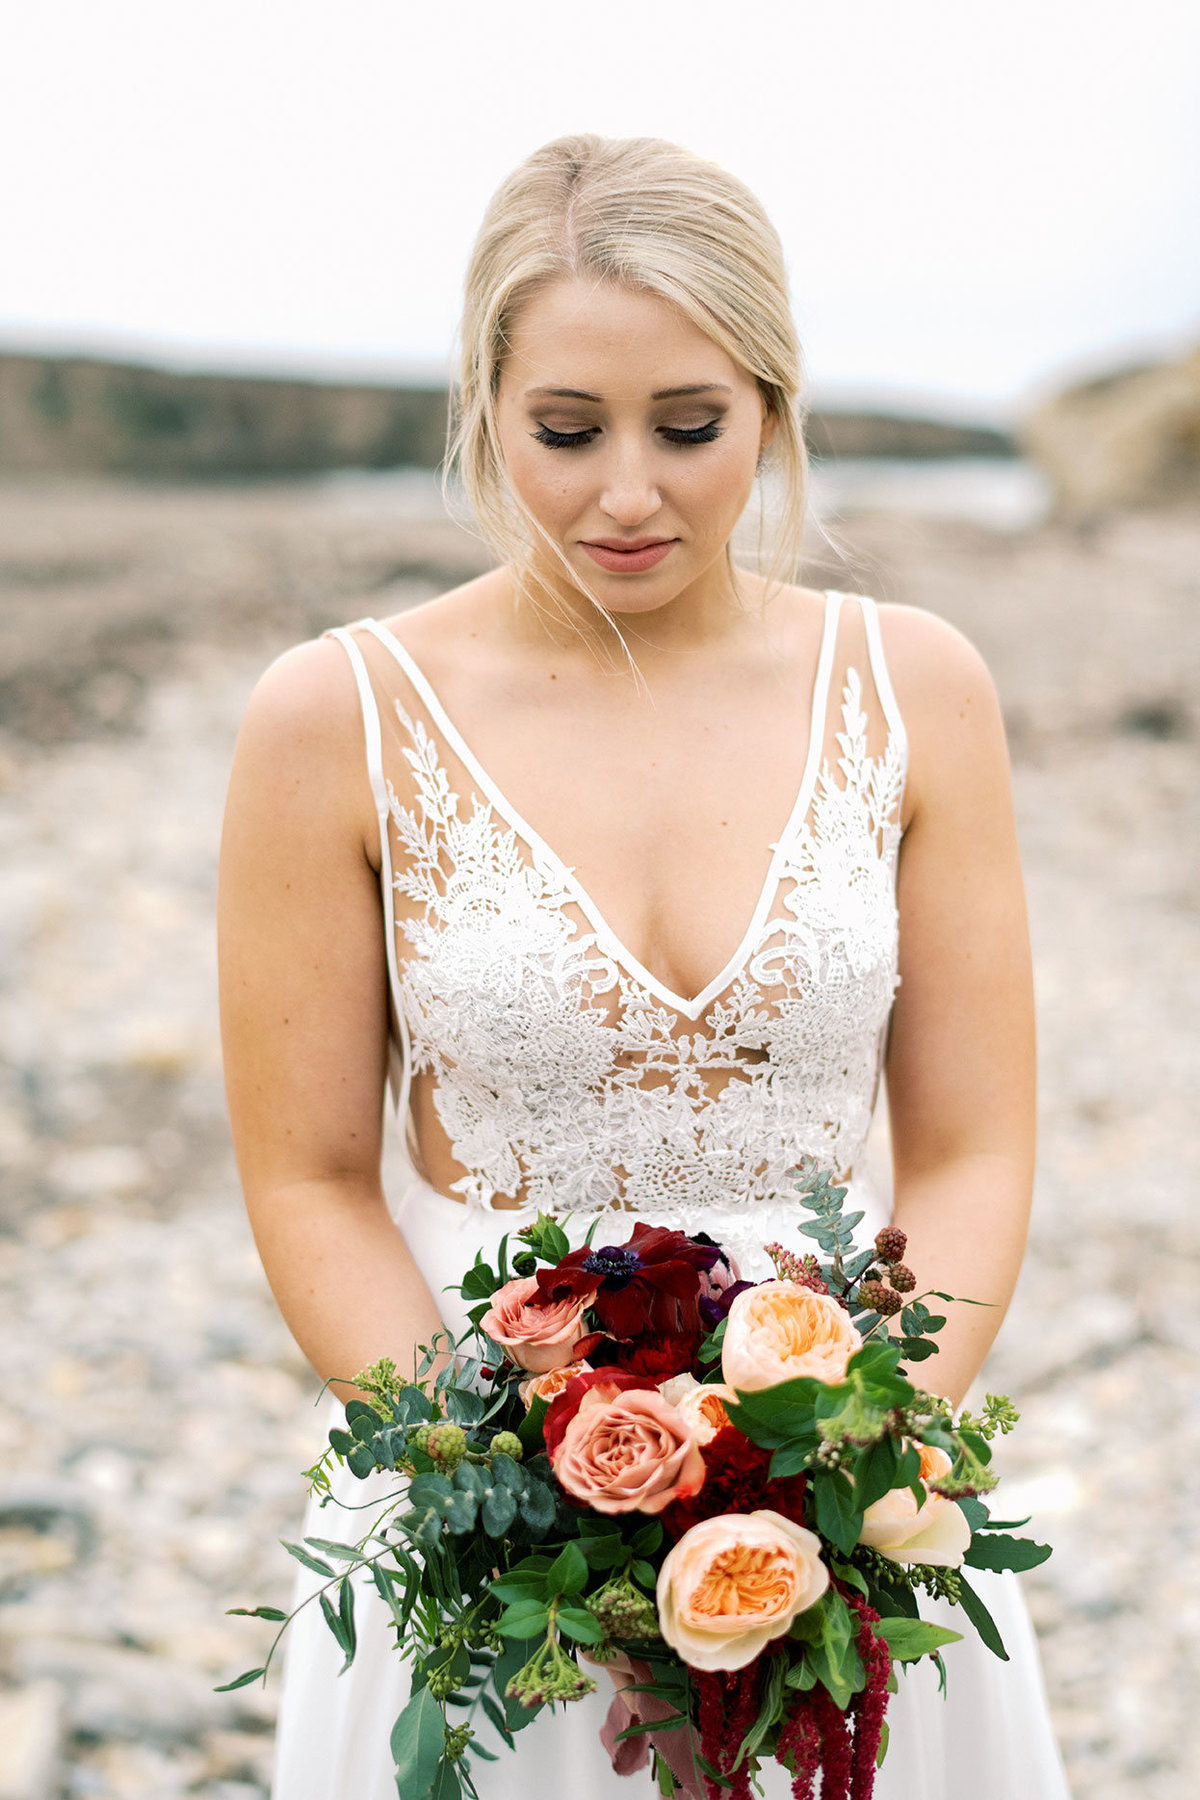 Montana-de-Oro-Elopement-styled-by-San-Luis-Obispo-Wedding-Planner-Embark-Event-Design-13